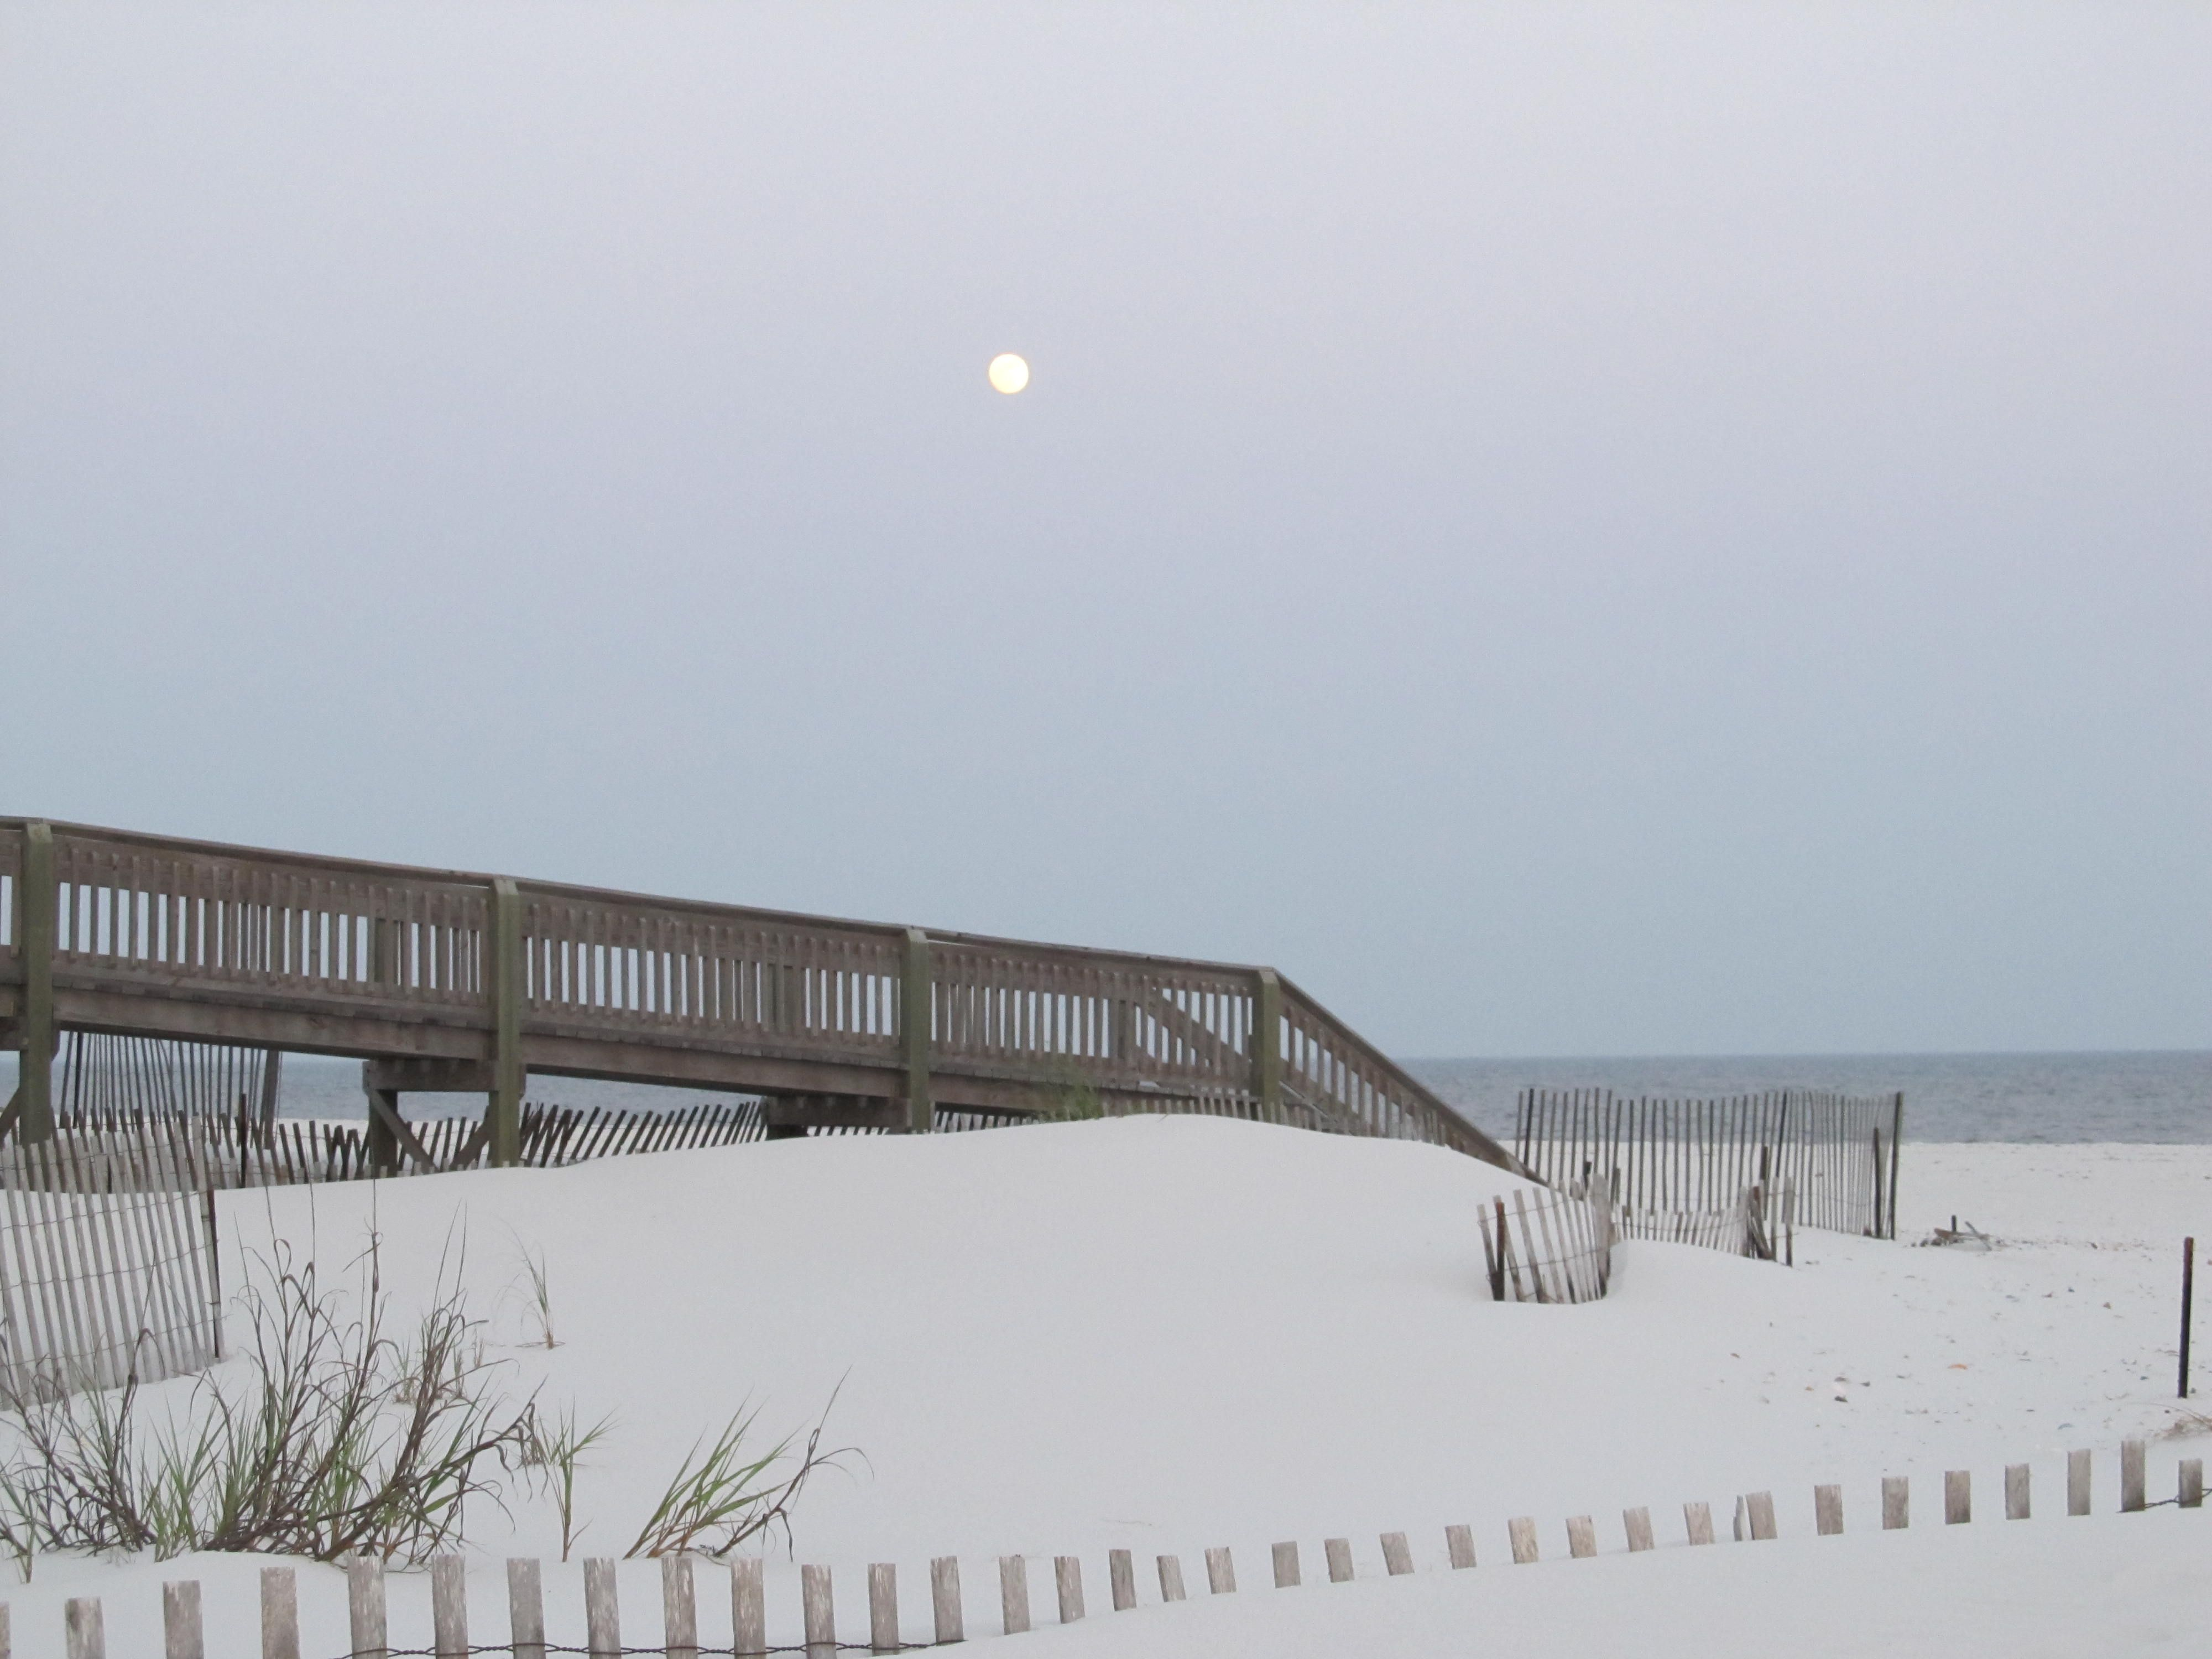 Just one of the pictures taken by me at Gulf Shores, Ala.